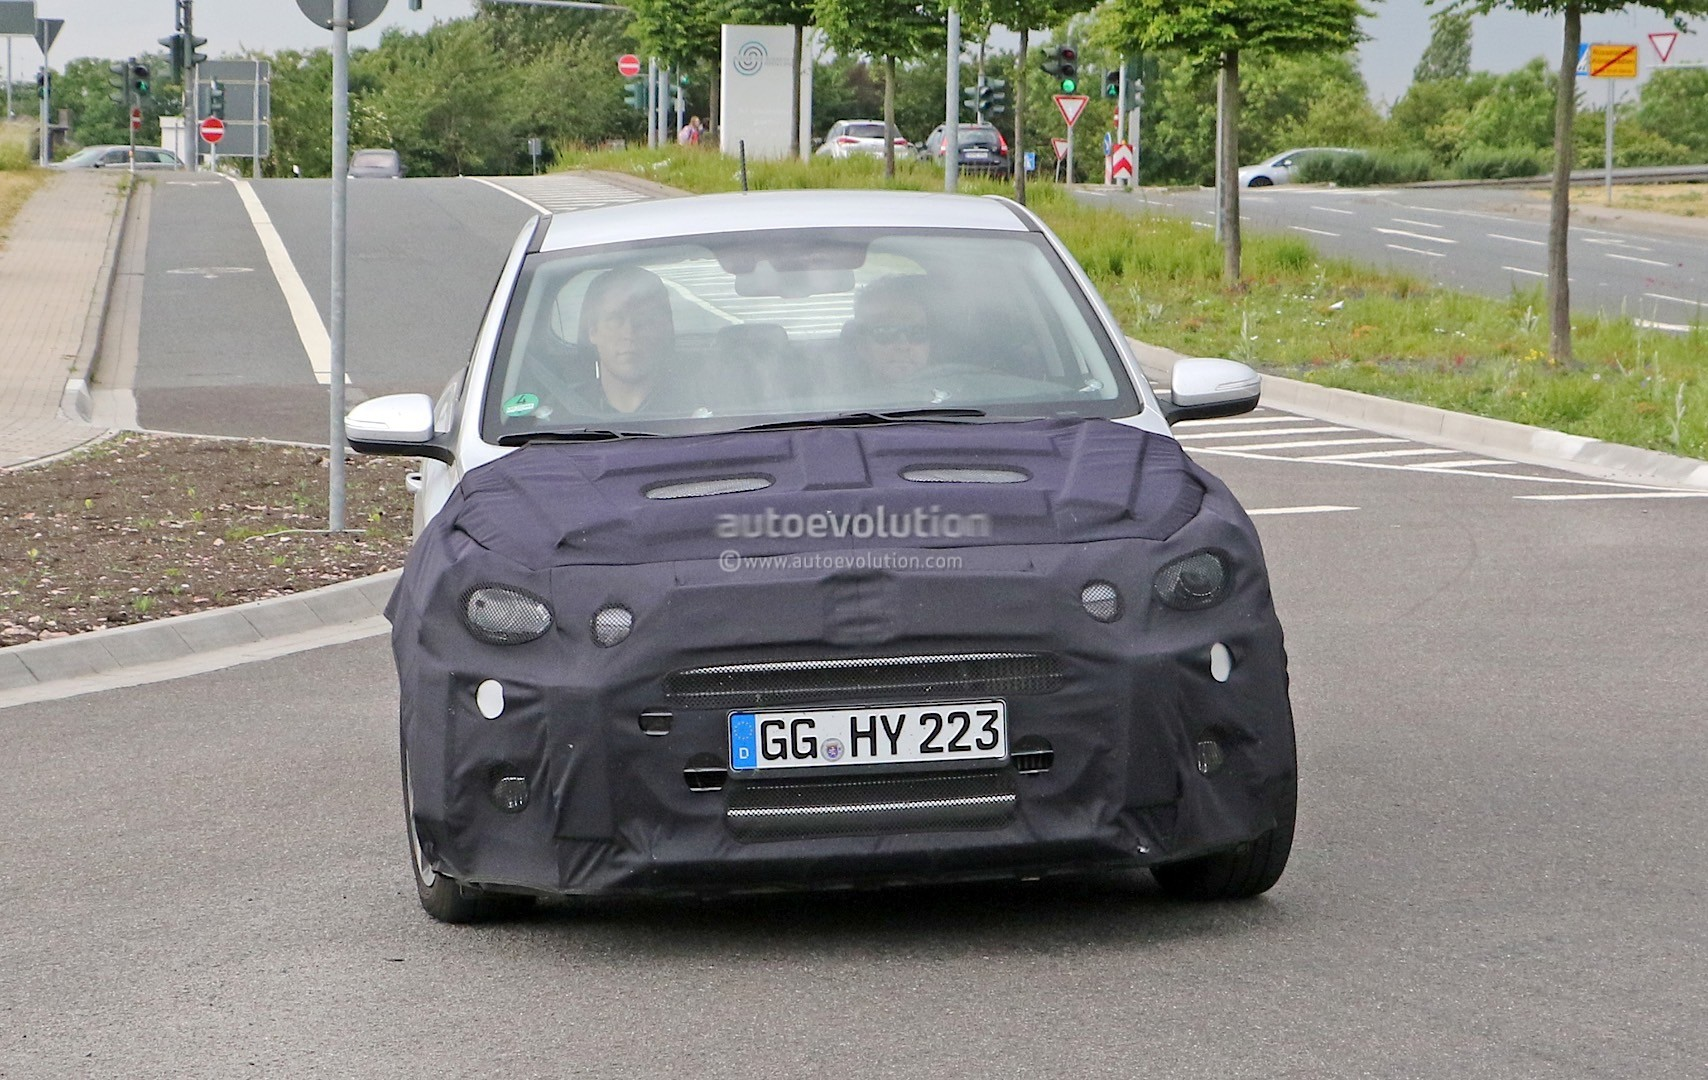 2018 - [Hyundai] I20 restylée Spyshots-hyundai-i20-prototype-spied-we-think-it-s-a-facelifted-version_2